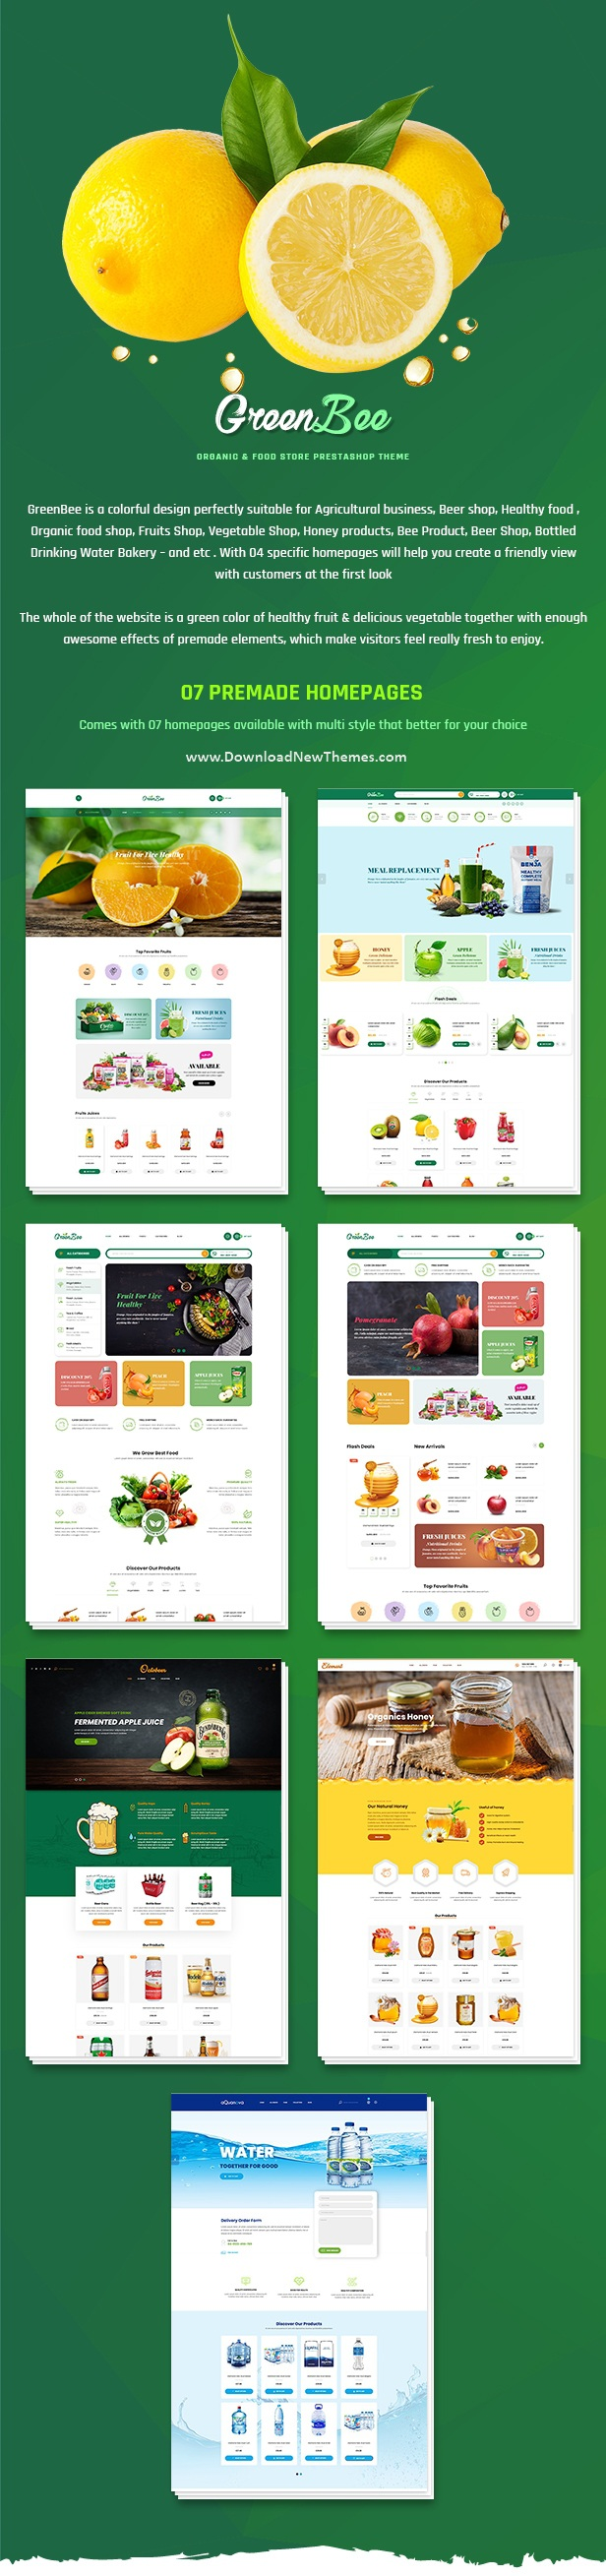 Vegetable and Fruit Shop eCommerce Website Theme